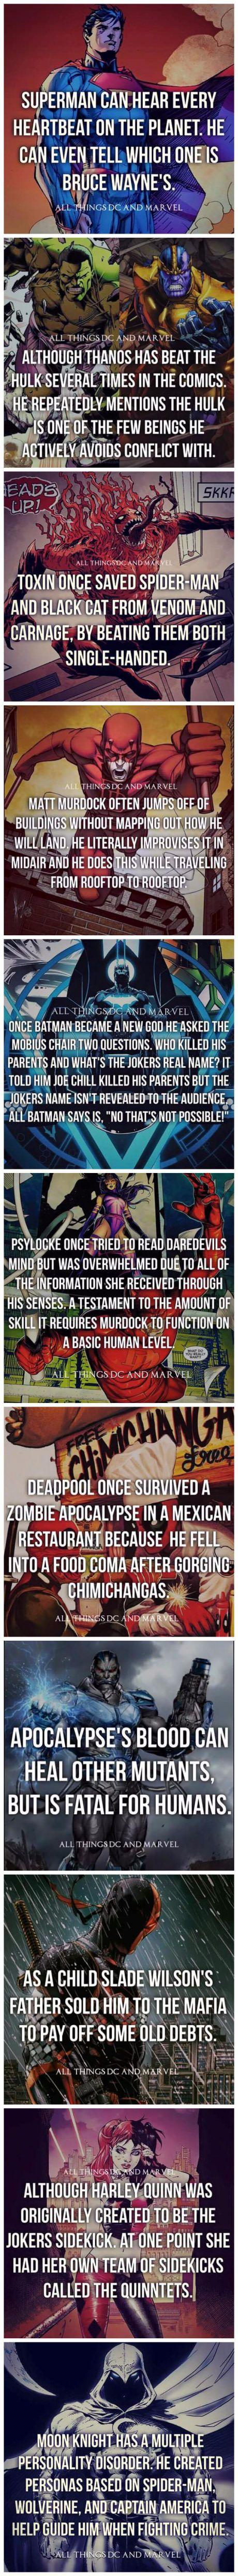 Superhero Facts! I feel so ill fully informed! I knew none of this! #SonGokuKakarot